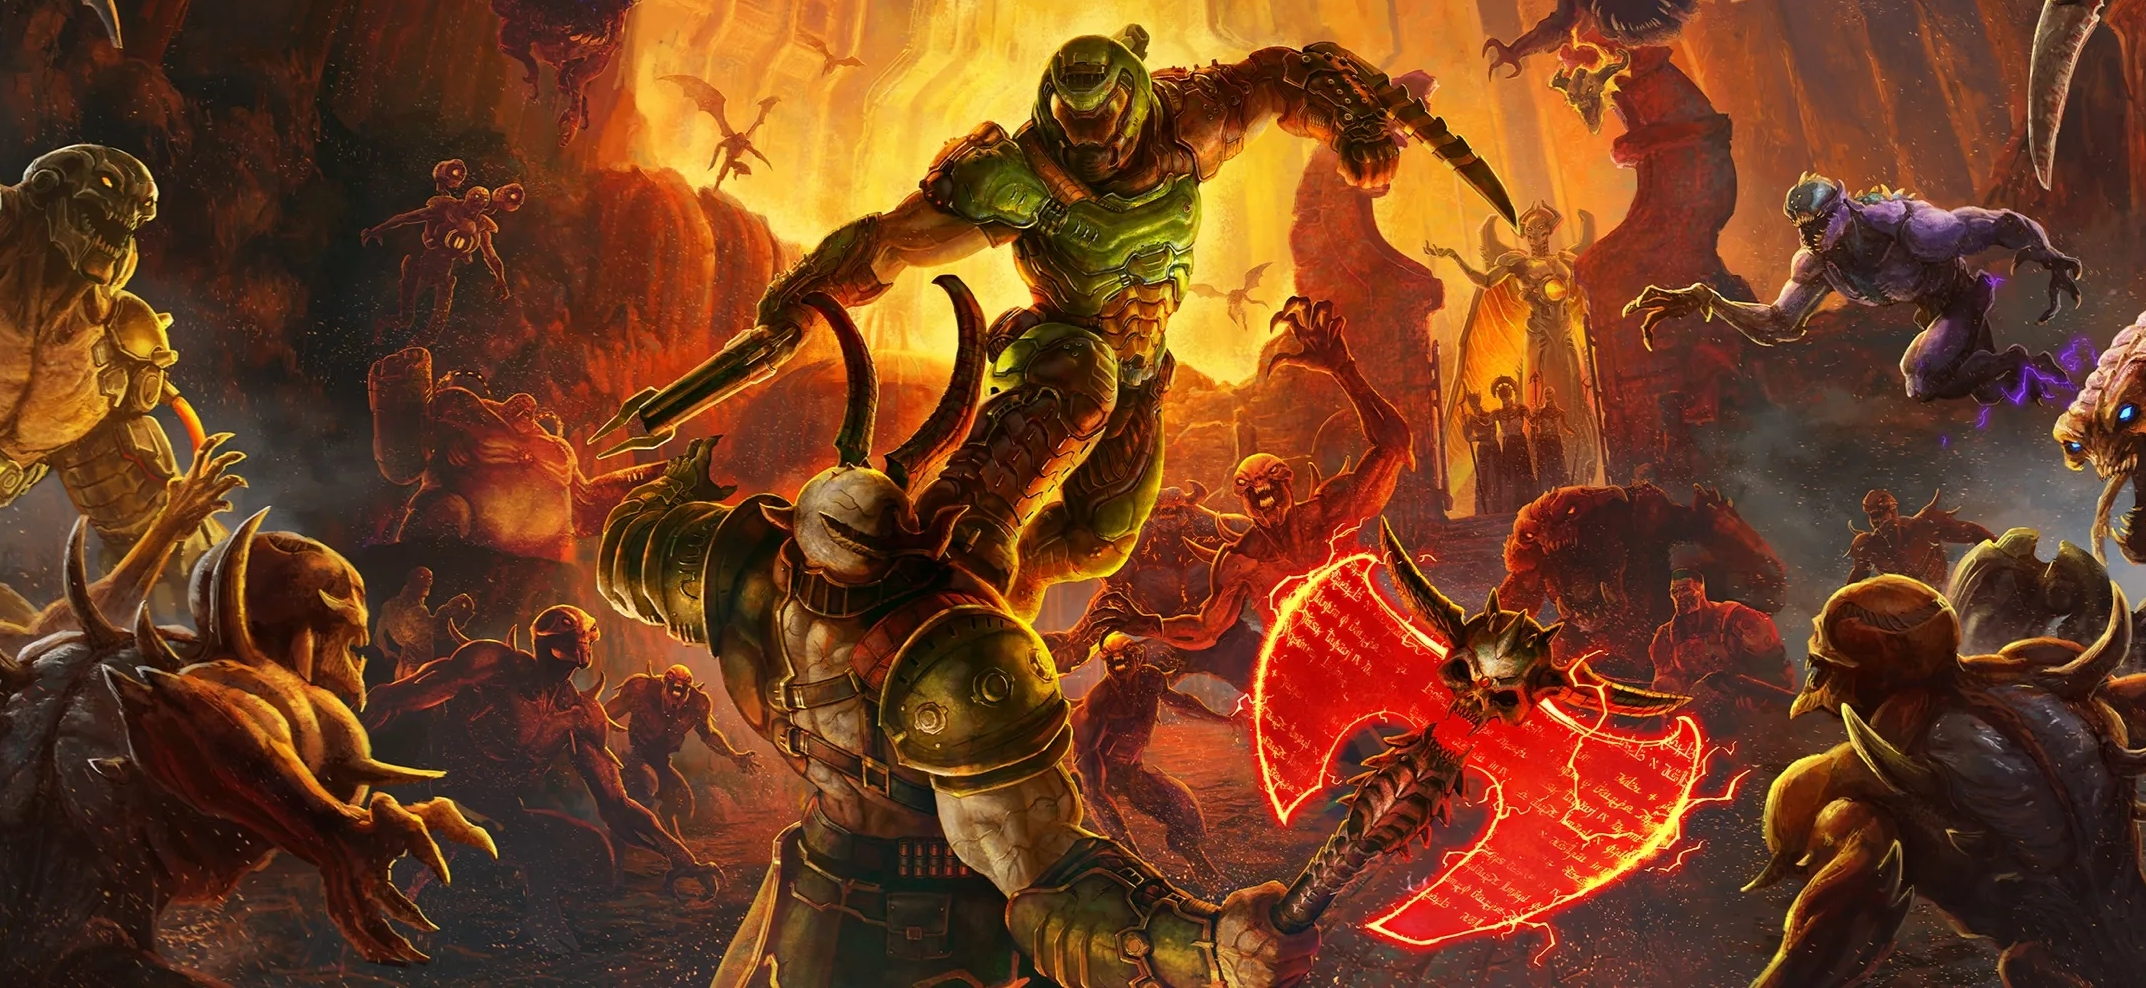 A New DOOM Eternal Trailer Is Set To Drop Tomorrow, Anticipation Builds For This Demon Slaying Heavy Metal Game From Bethesda